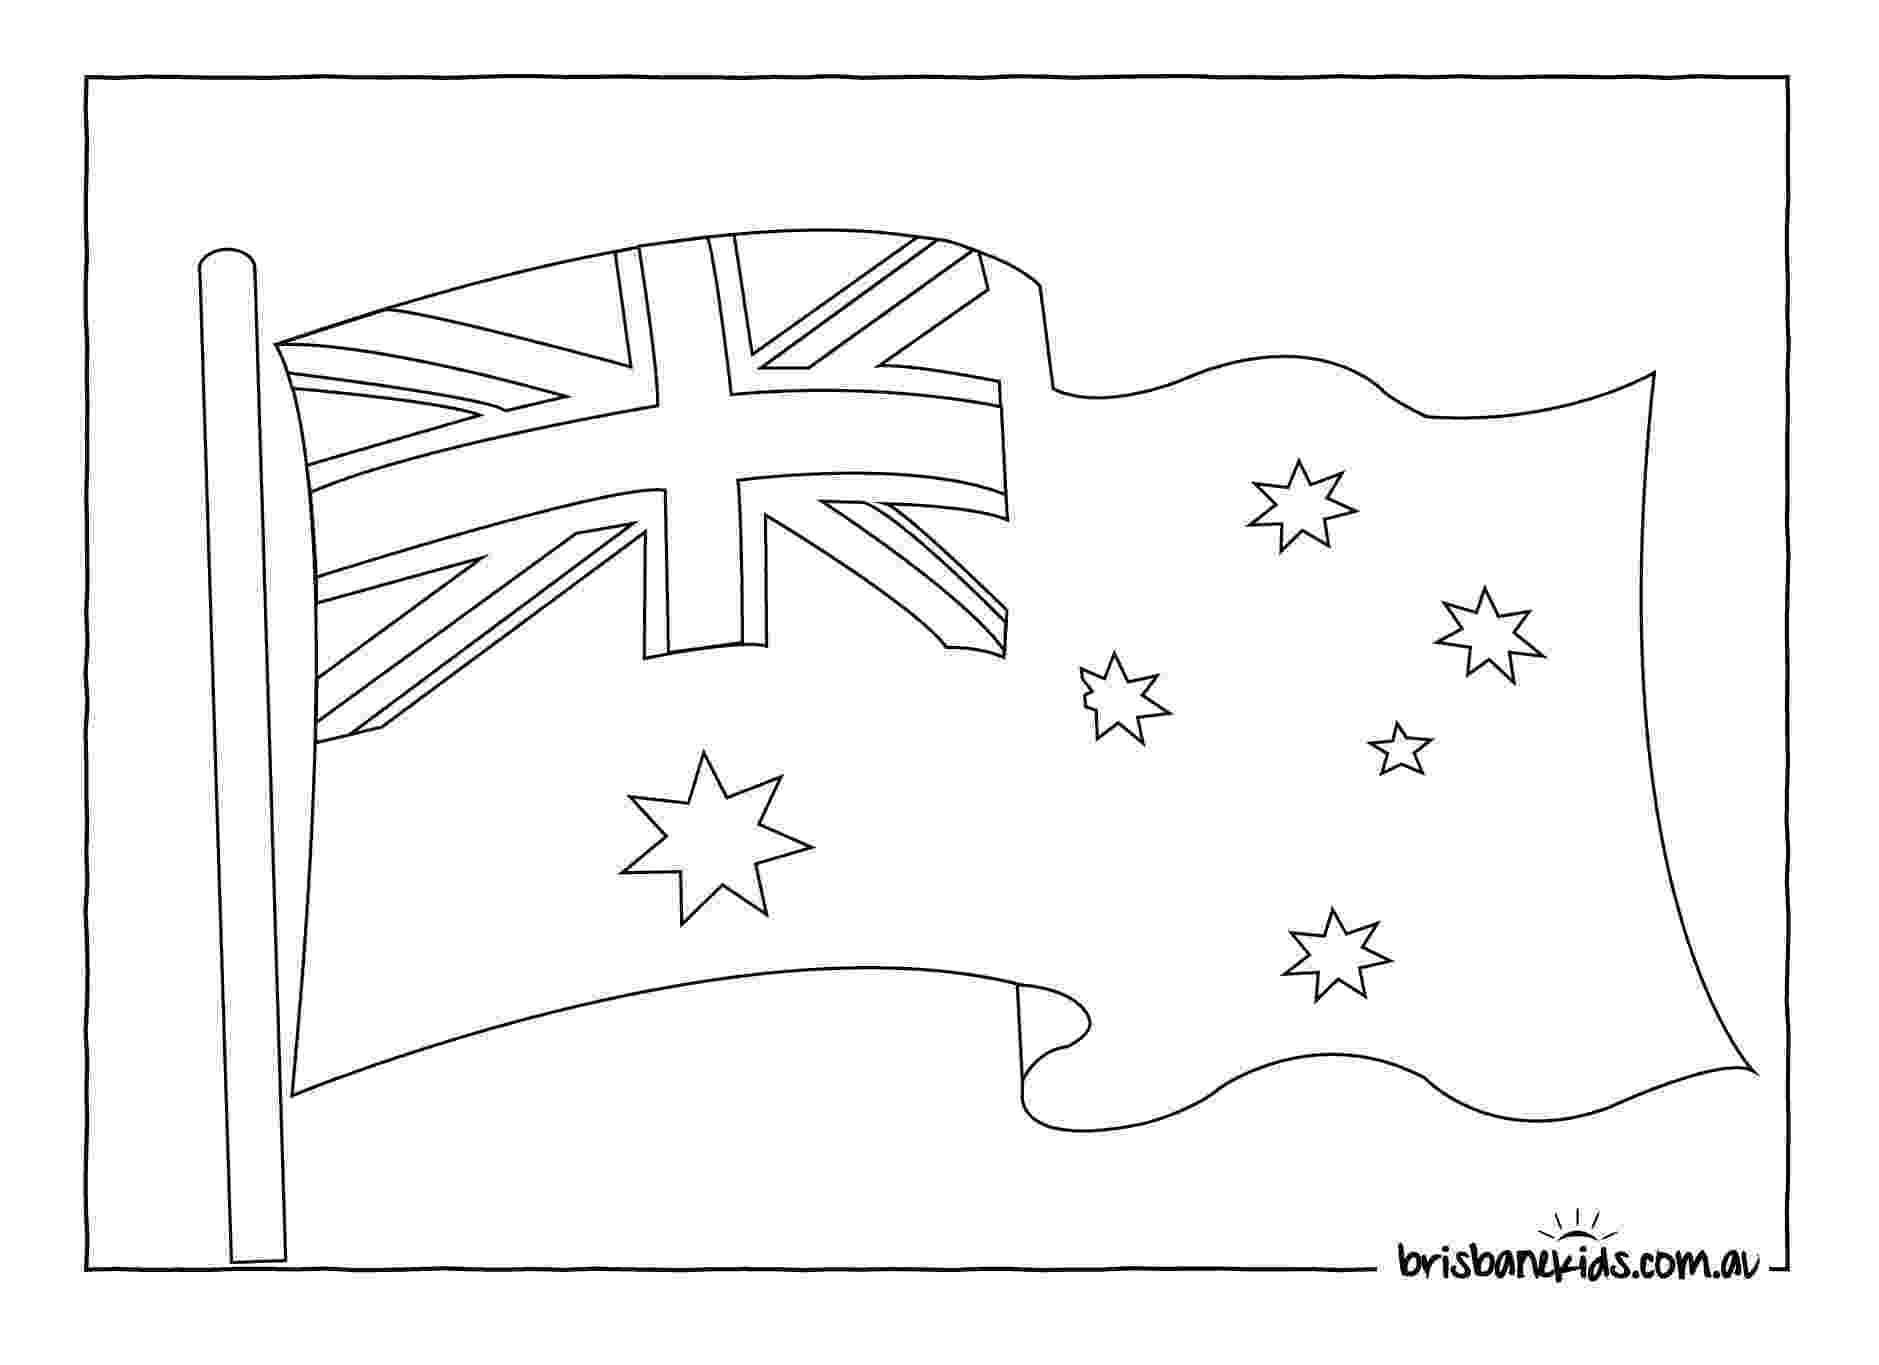 australian flag template to colour australia day colouring pages brisbane kids australian flag colour to template